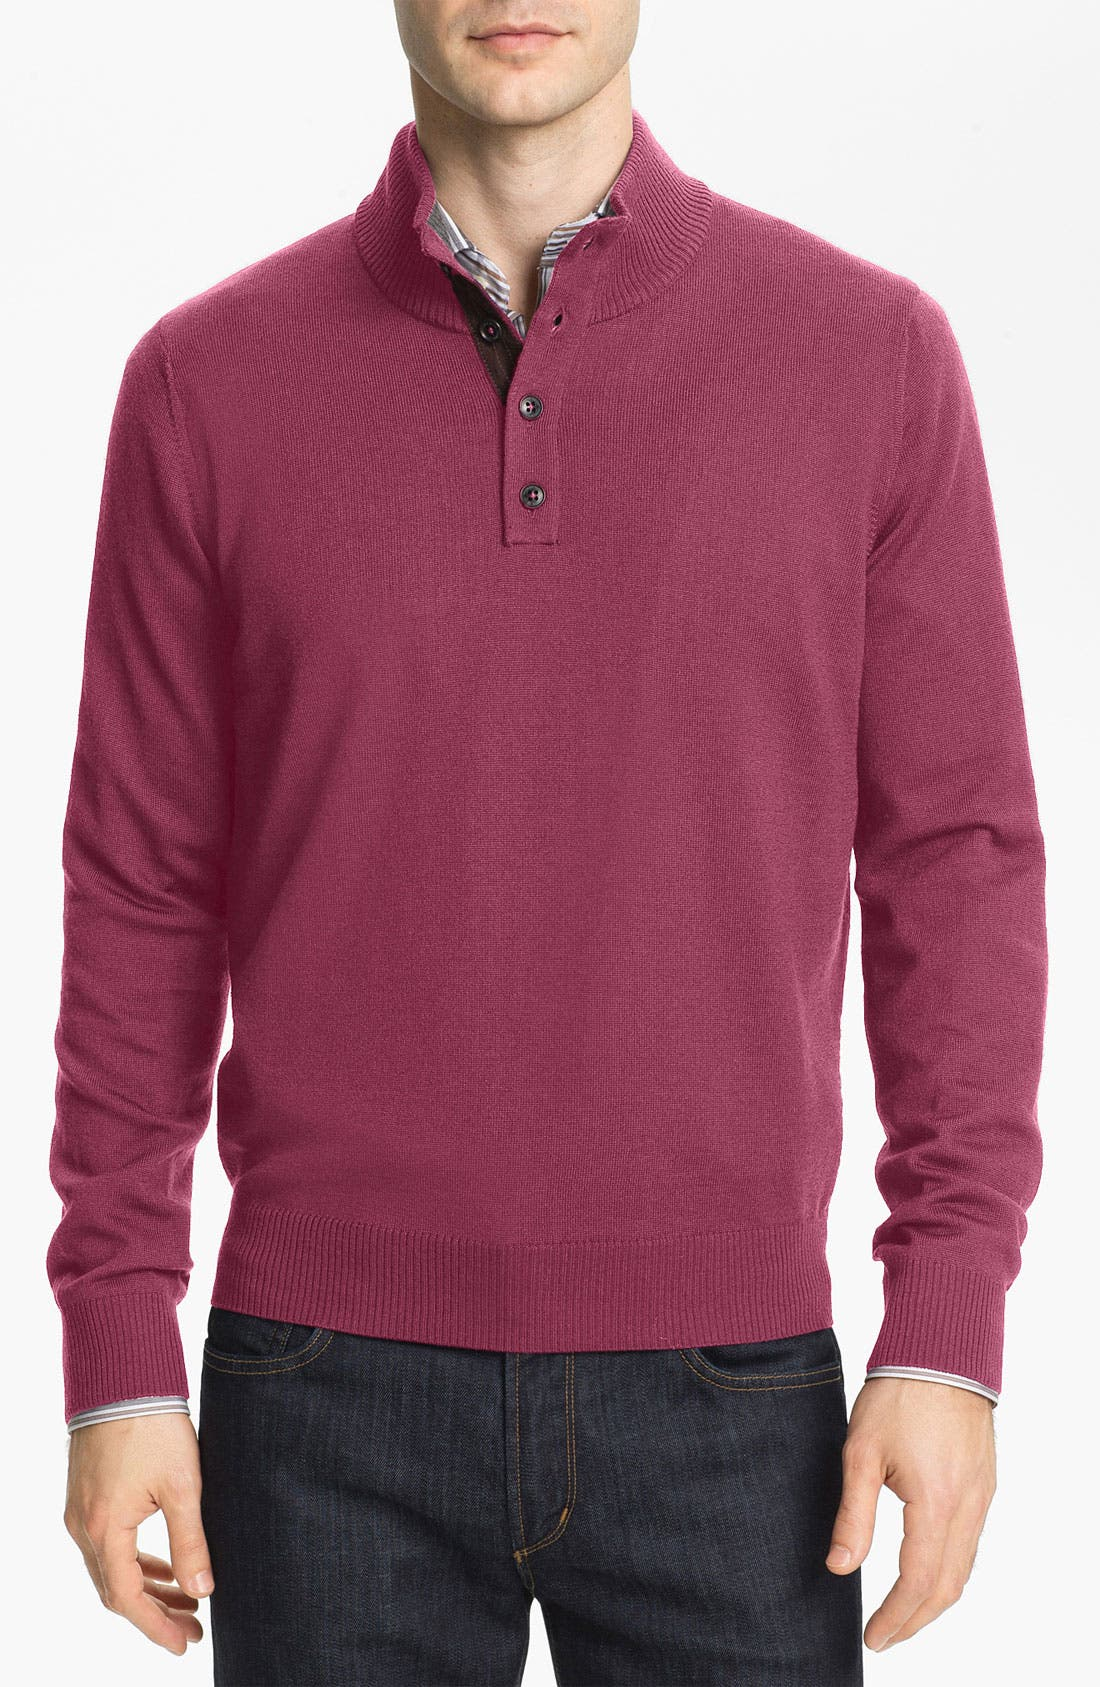 Alternate Image 1 Selected - Thomas Dean Mock Neck Merino Wool Sweater